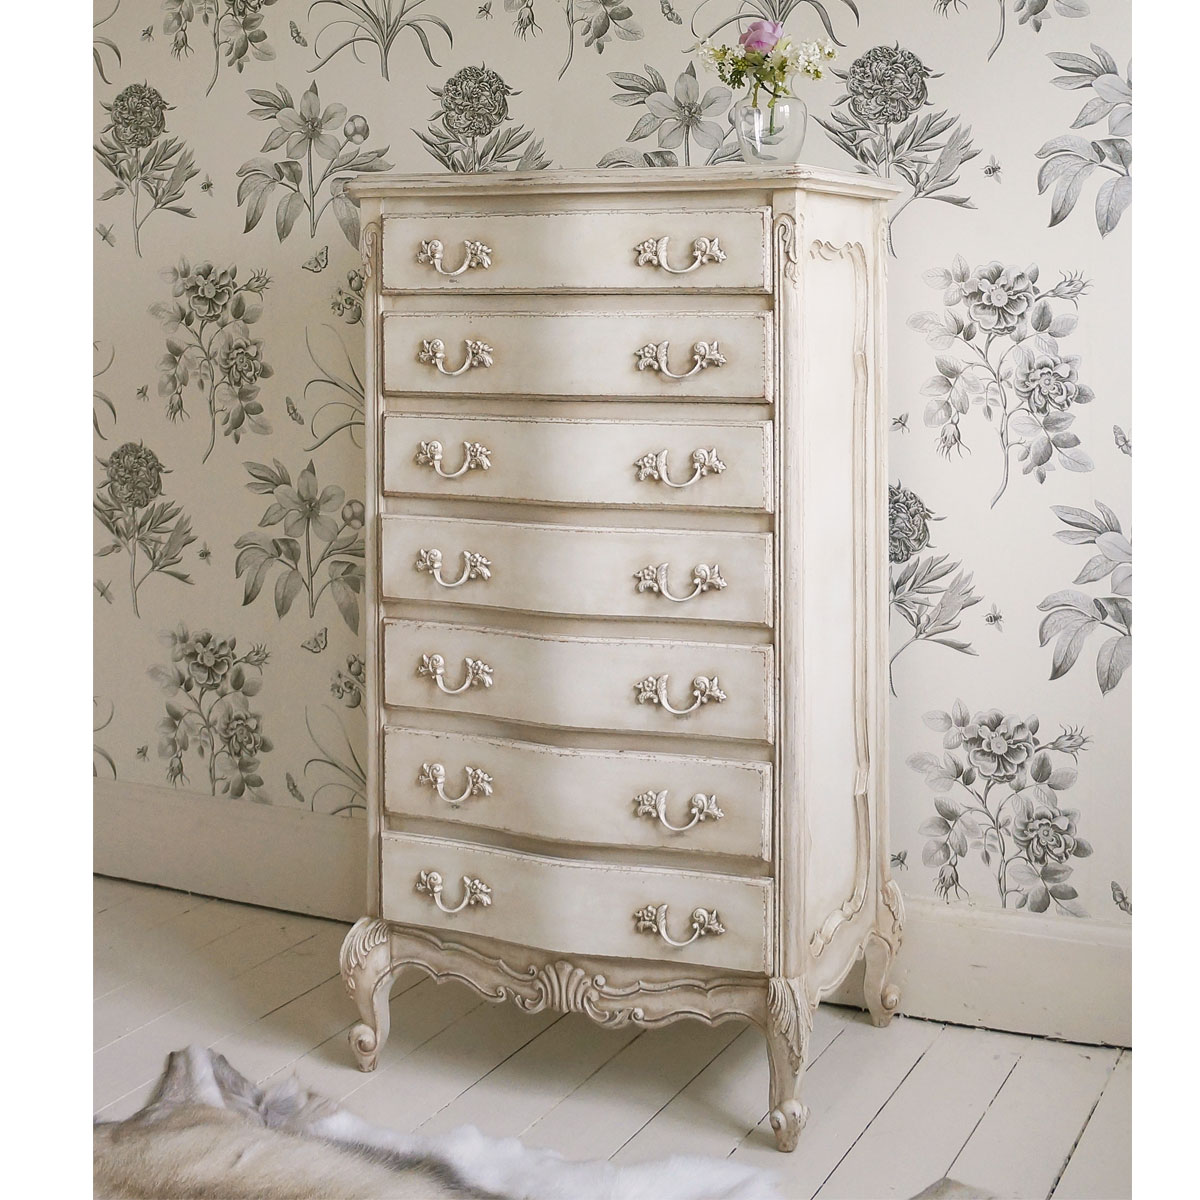 Delphine shabby chic antique white tallboy french for Furniture in french